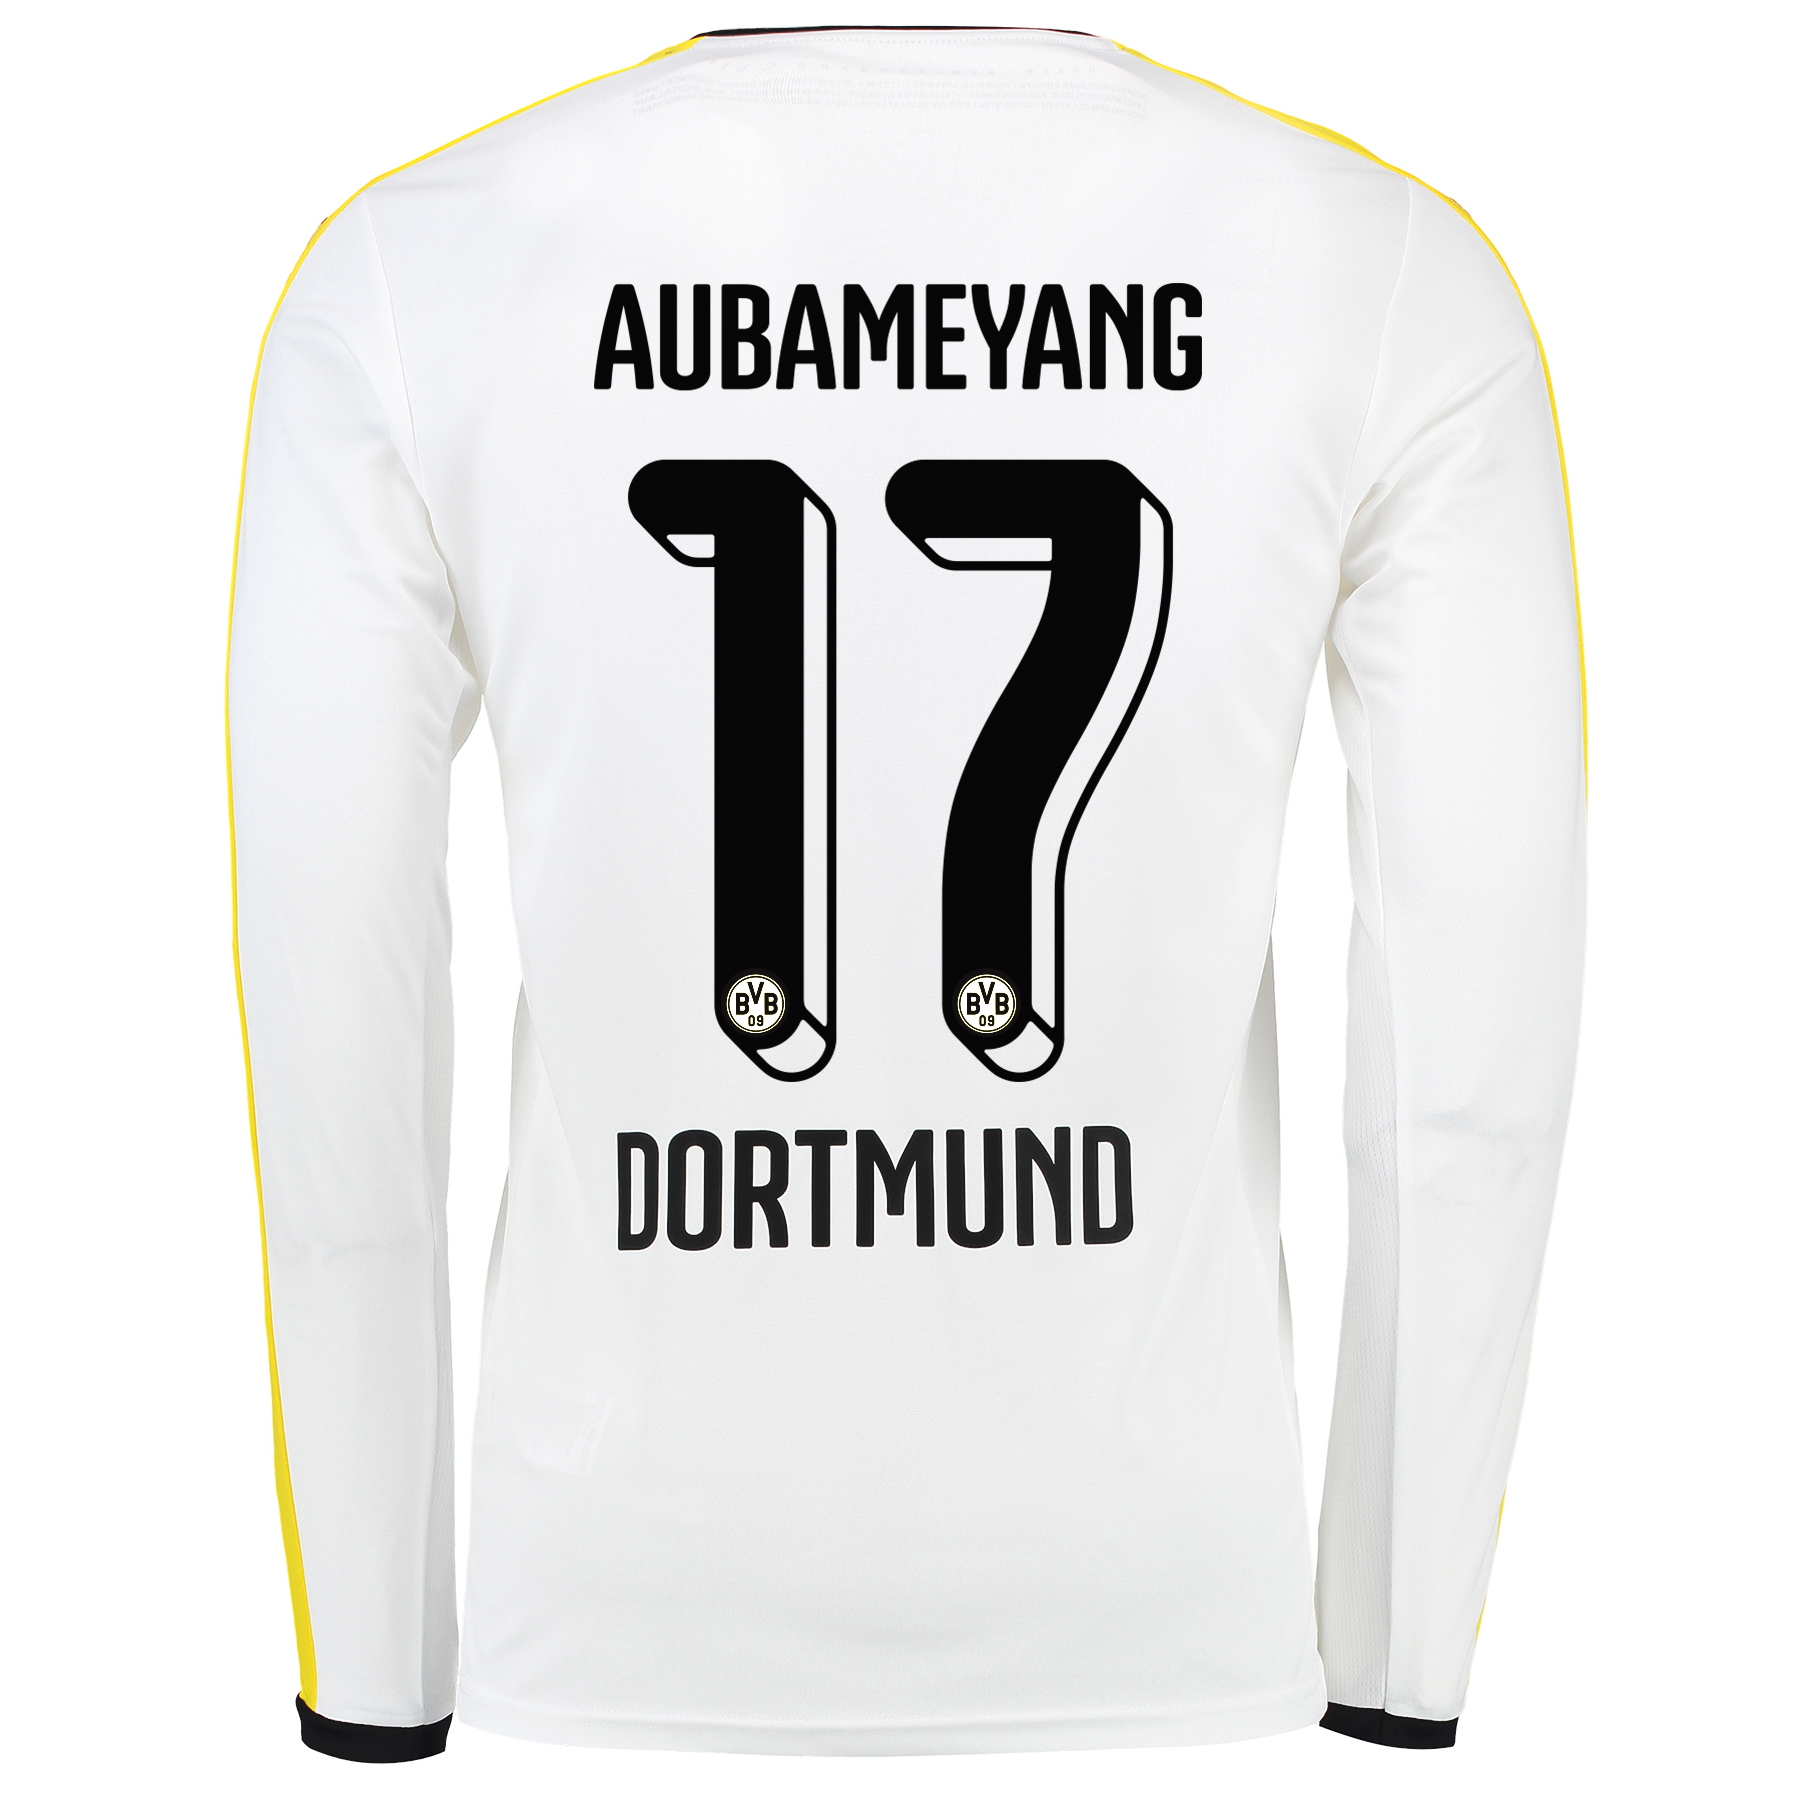 BVB Third Shirt 2015/16 – Long Sleeve White with Aubameyang 17 printin